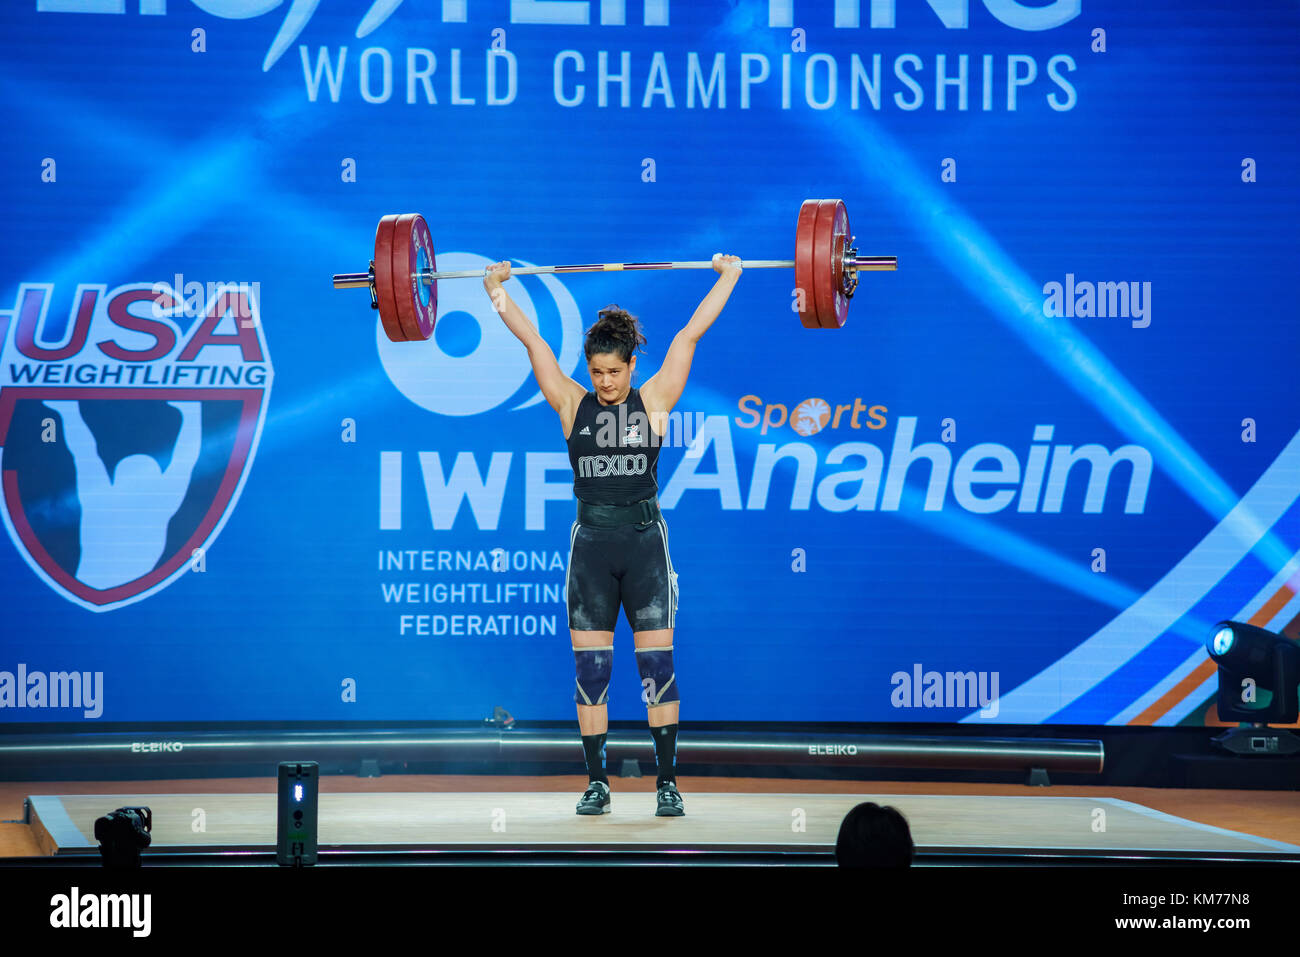 Anaheim, NOV 30: 2017 Torres Wong Anacarmen in International Weightlifting Federation World Championships on NOV - Stock Image